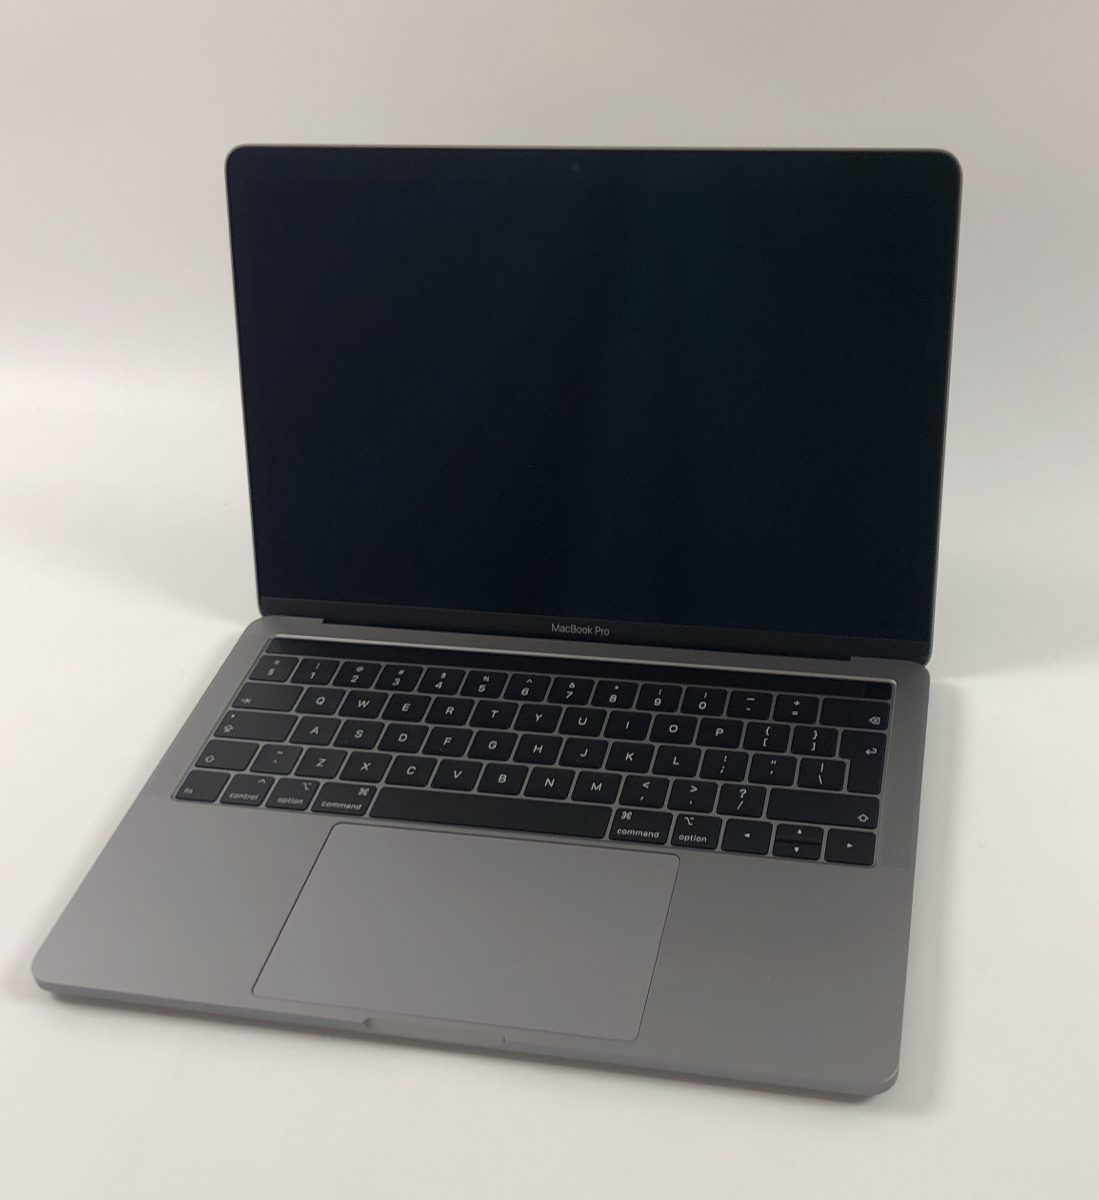 "MacBook Pro 13"" 4TBT Mid 2018 (Intel Quad-Core i5 2.3 GHz 8 GB RAM 512 GB SSD), Space Gray, Intel Quad-Core i5 2.3 GHz, 8 GB RAM, 512 GB SSD, obraz 1"